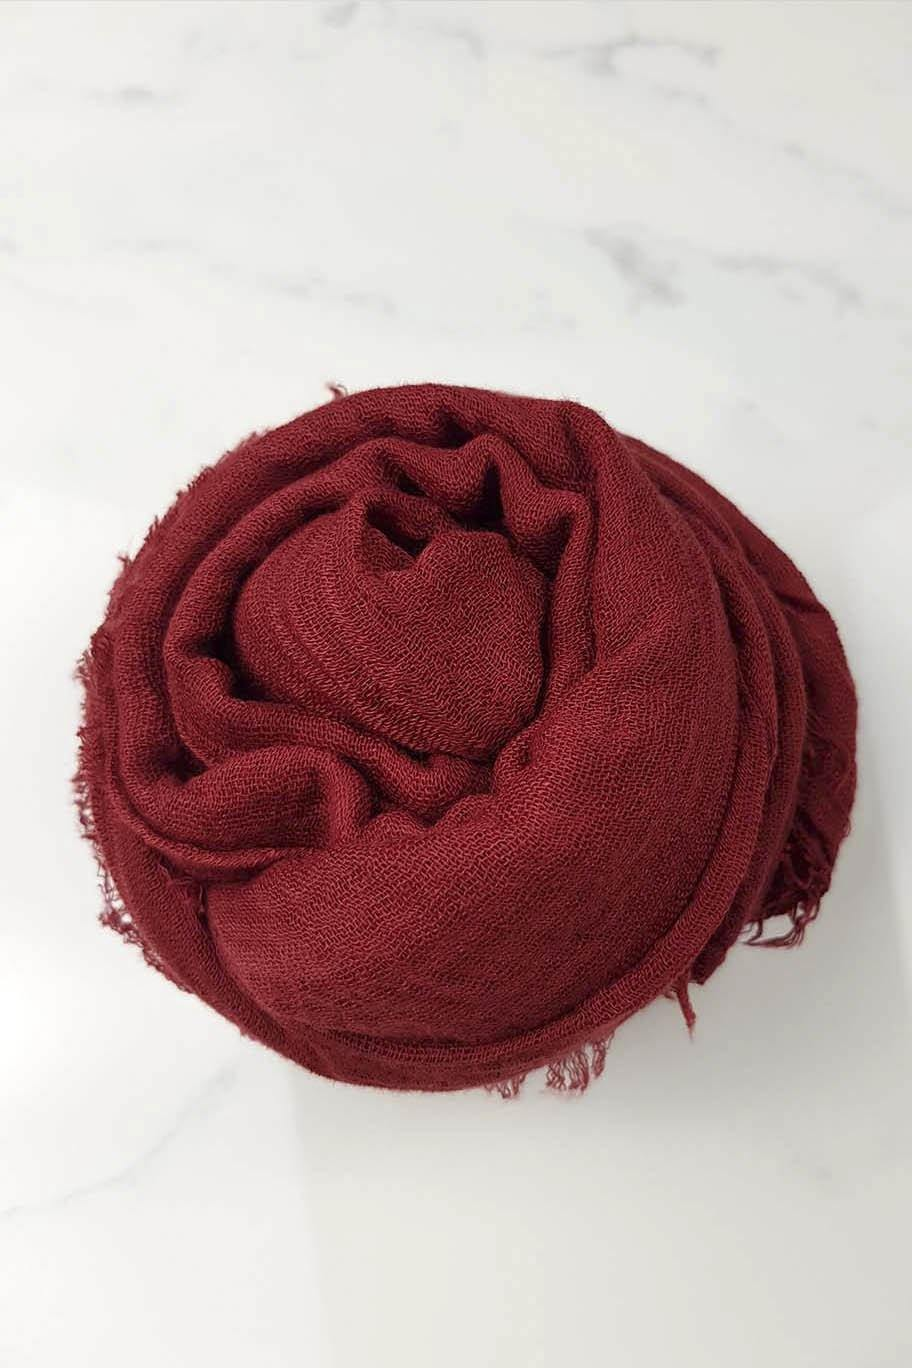 Toofah Red-Maroon Crinkle Cotton - Crinkle Cotton Hijabs - The Modest Look